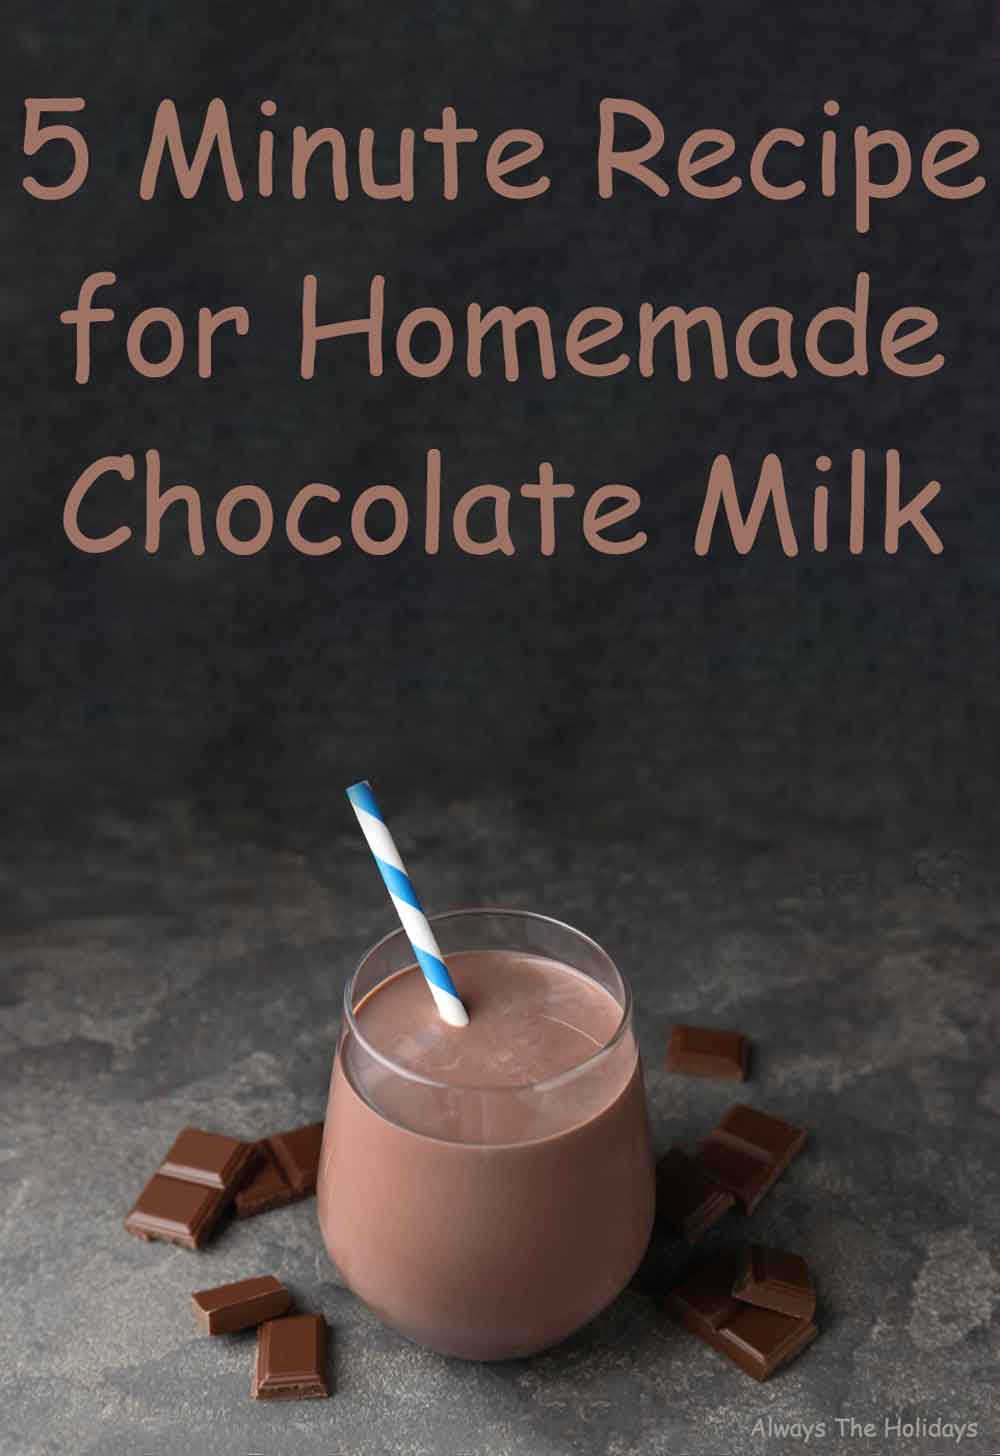 """A glass of chocolate milk against a slate backdrop with a text overlay that reads """"5 minute recipe for homemade chocolate milk""""."""